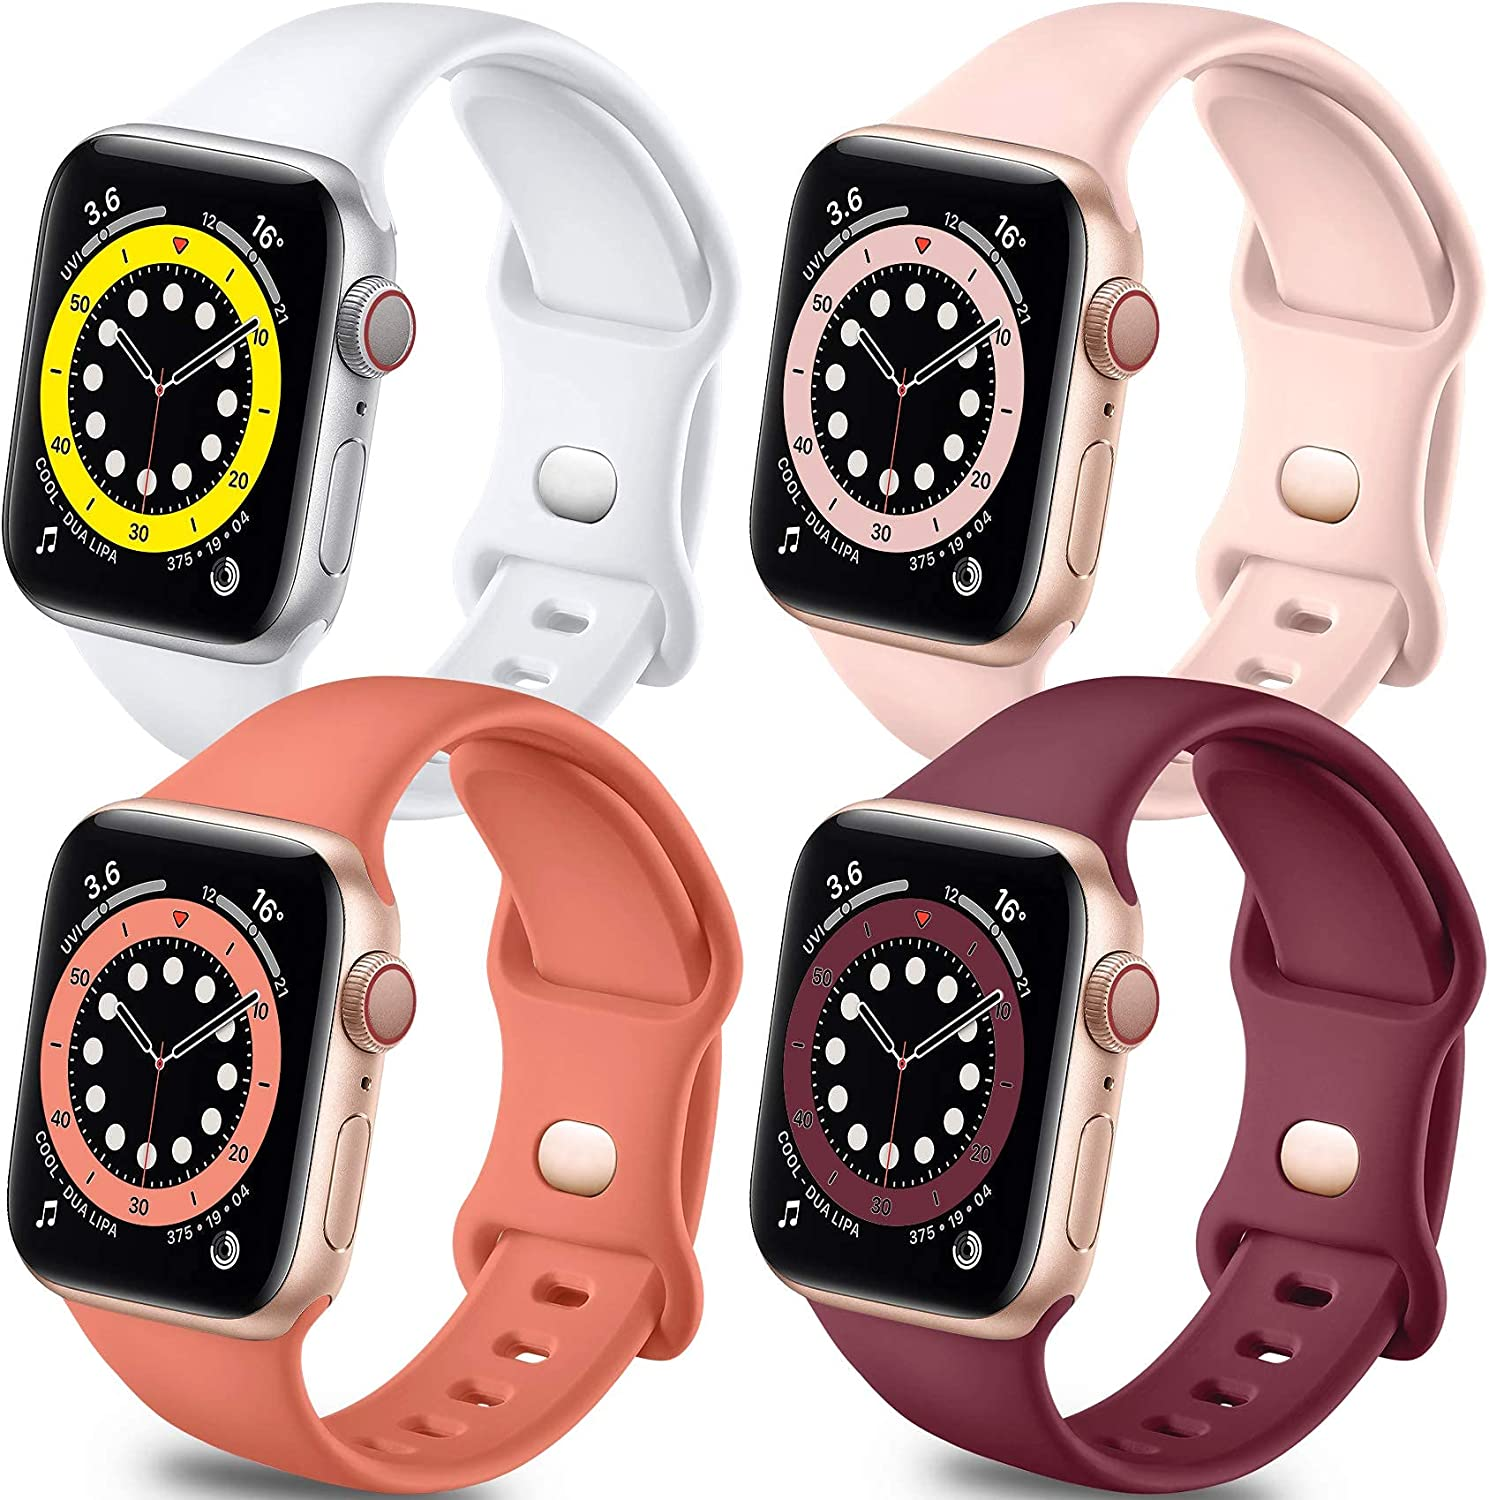 Getino Bands Compatible with Apple Watch Band 40mm 38mm, Soft Silicone Sport Replacement Band for iWatch SE & Series 6 5 4 3 2 1 Women Men, 4 Pack, White, Pink Sand, Wine Red, Coral, M/L